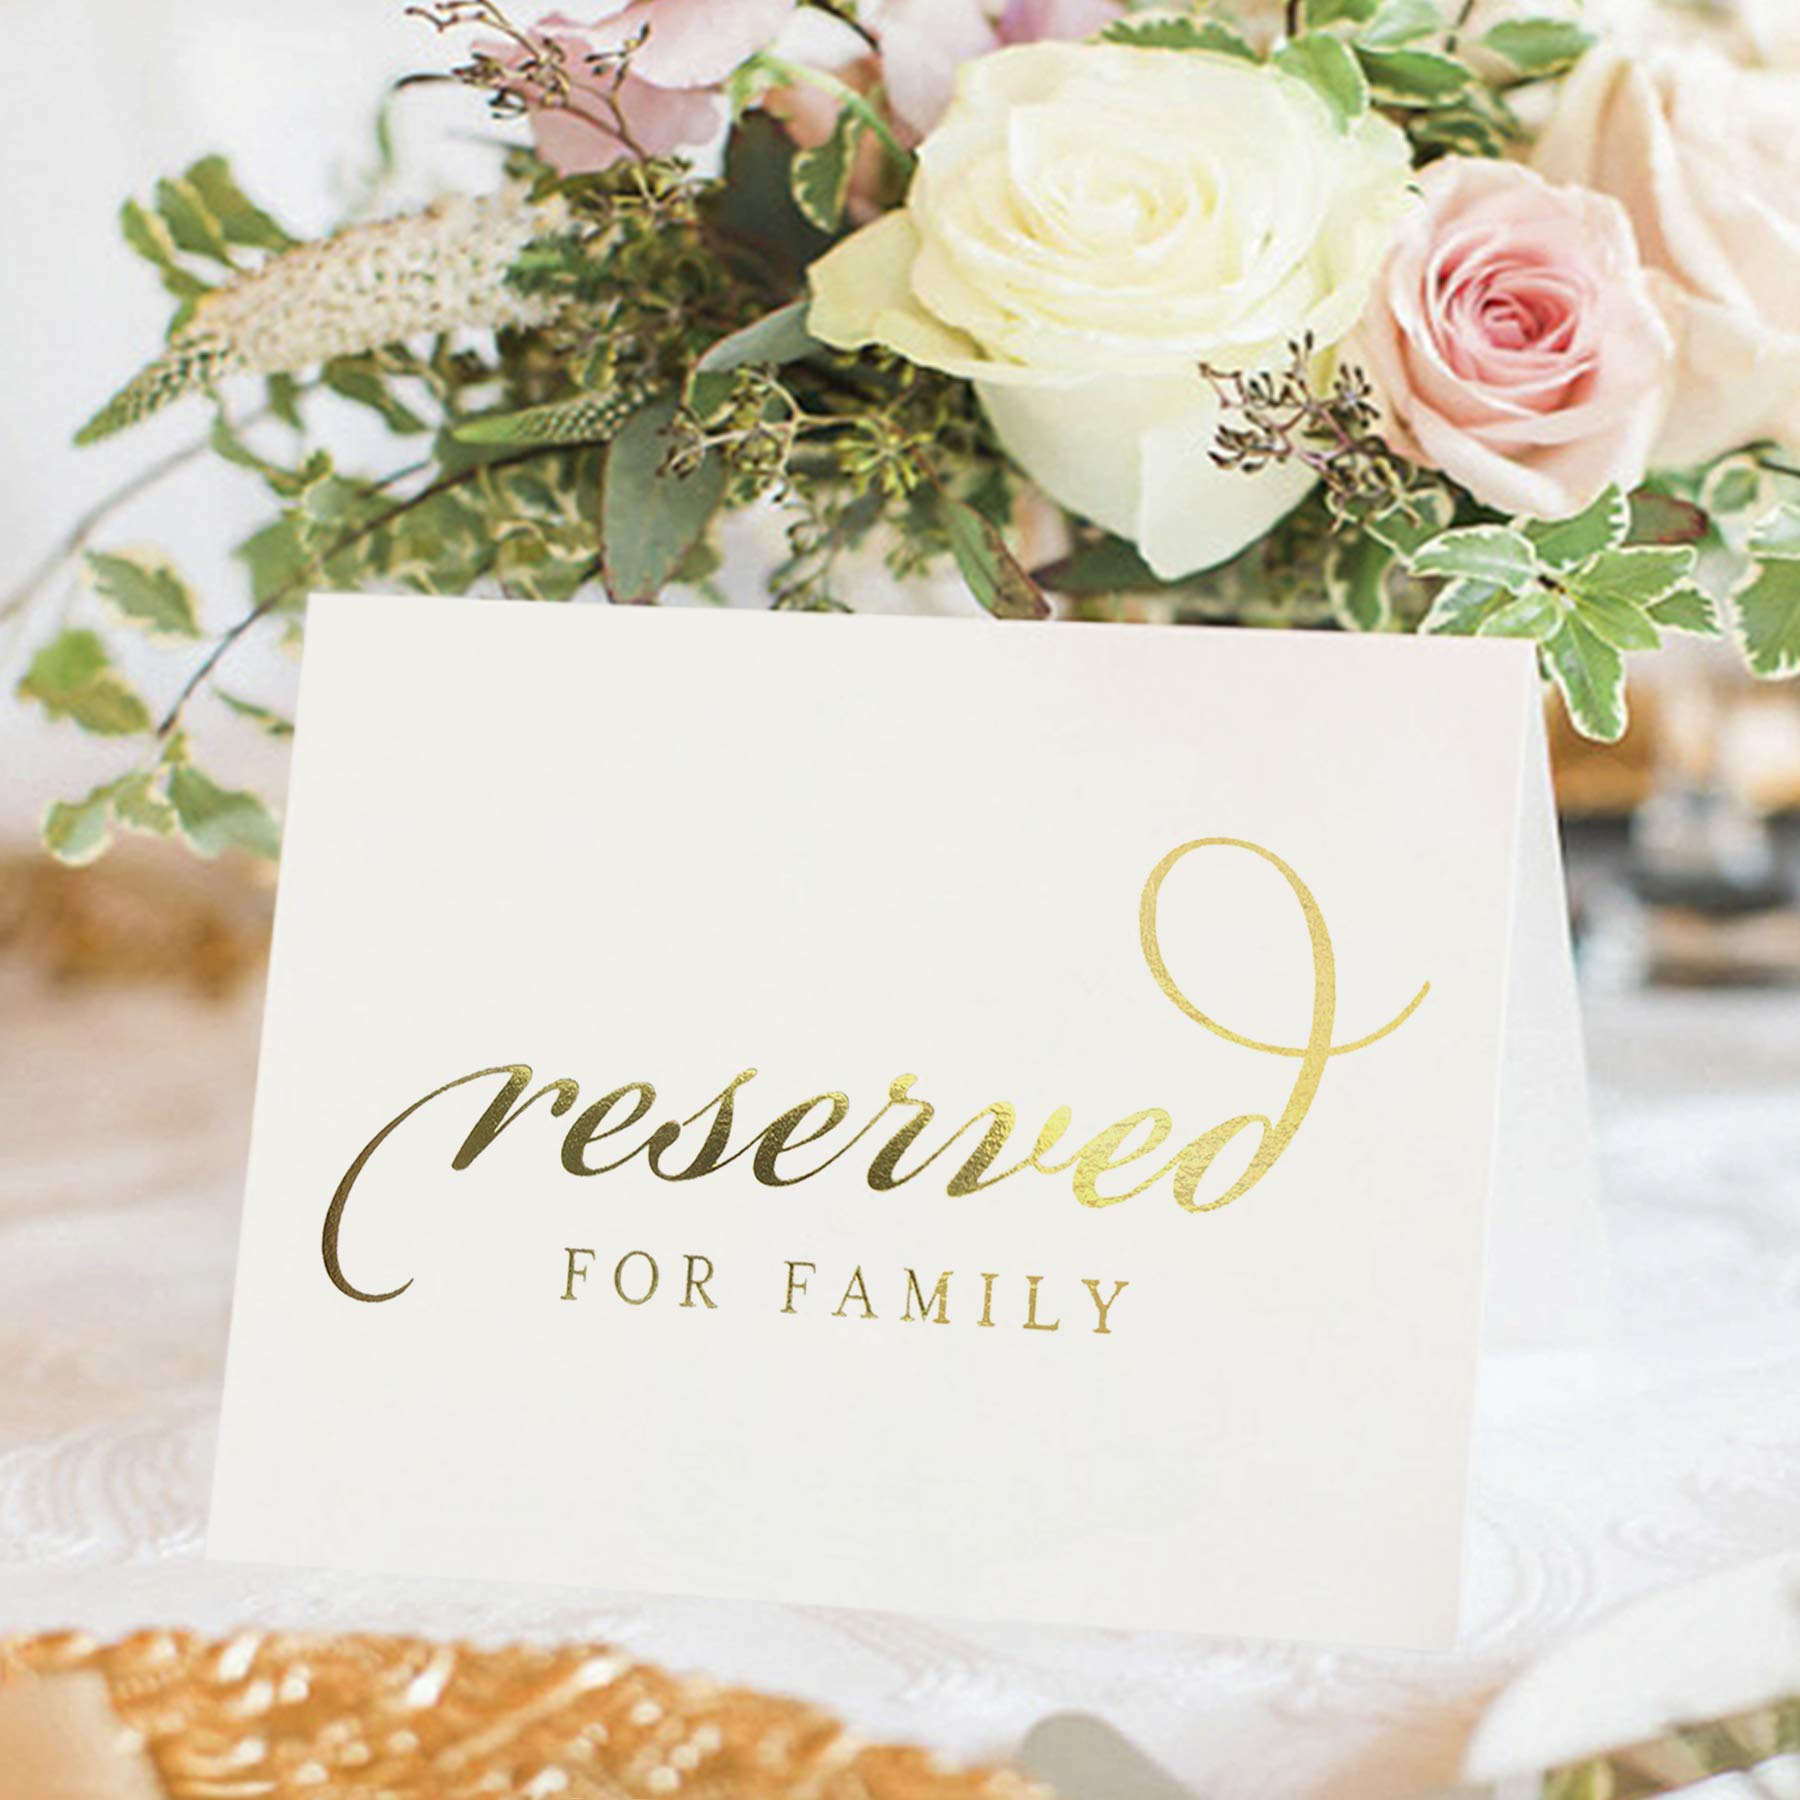 Bliss Collections Gold Reserved Signs for Wedding Ceremony or Reception, 4x6 Tented Metallic Real Gold Foil Cards for Tables, Chairs, Pews, Framing - Pack of 10